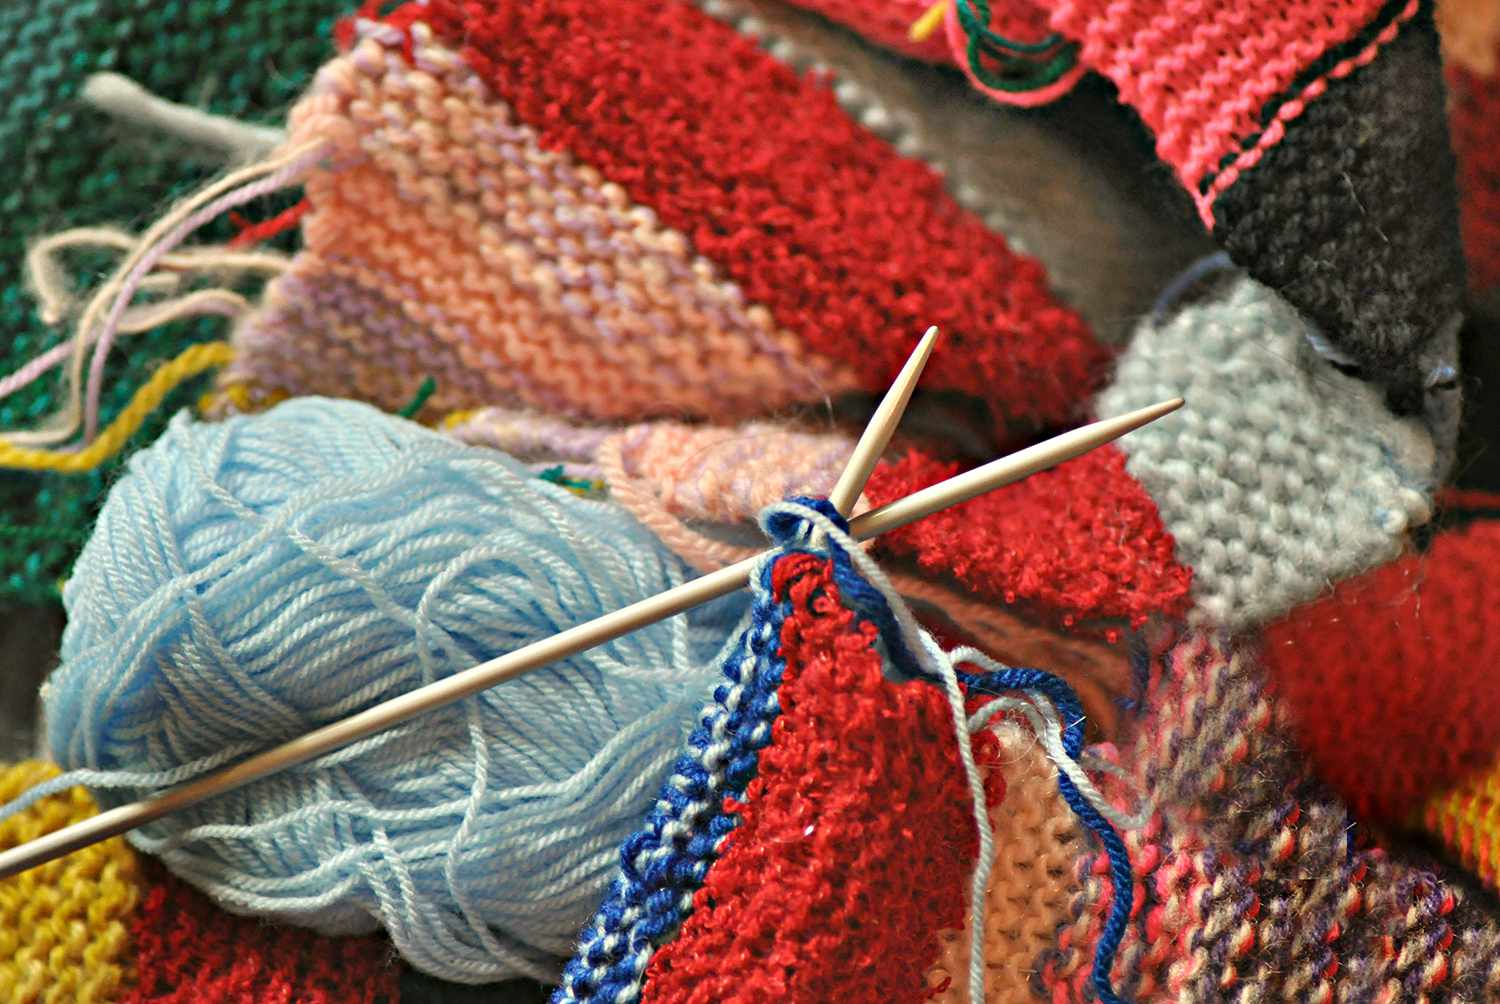 Crochet Patterns Free Free Crochet Patterns For Every Project